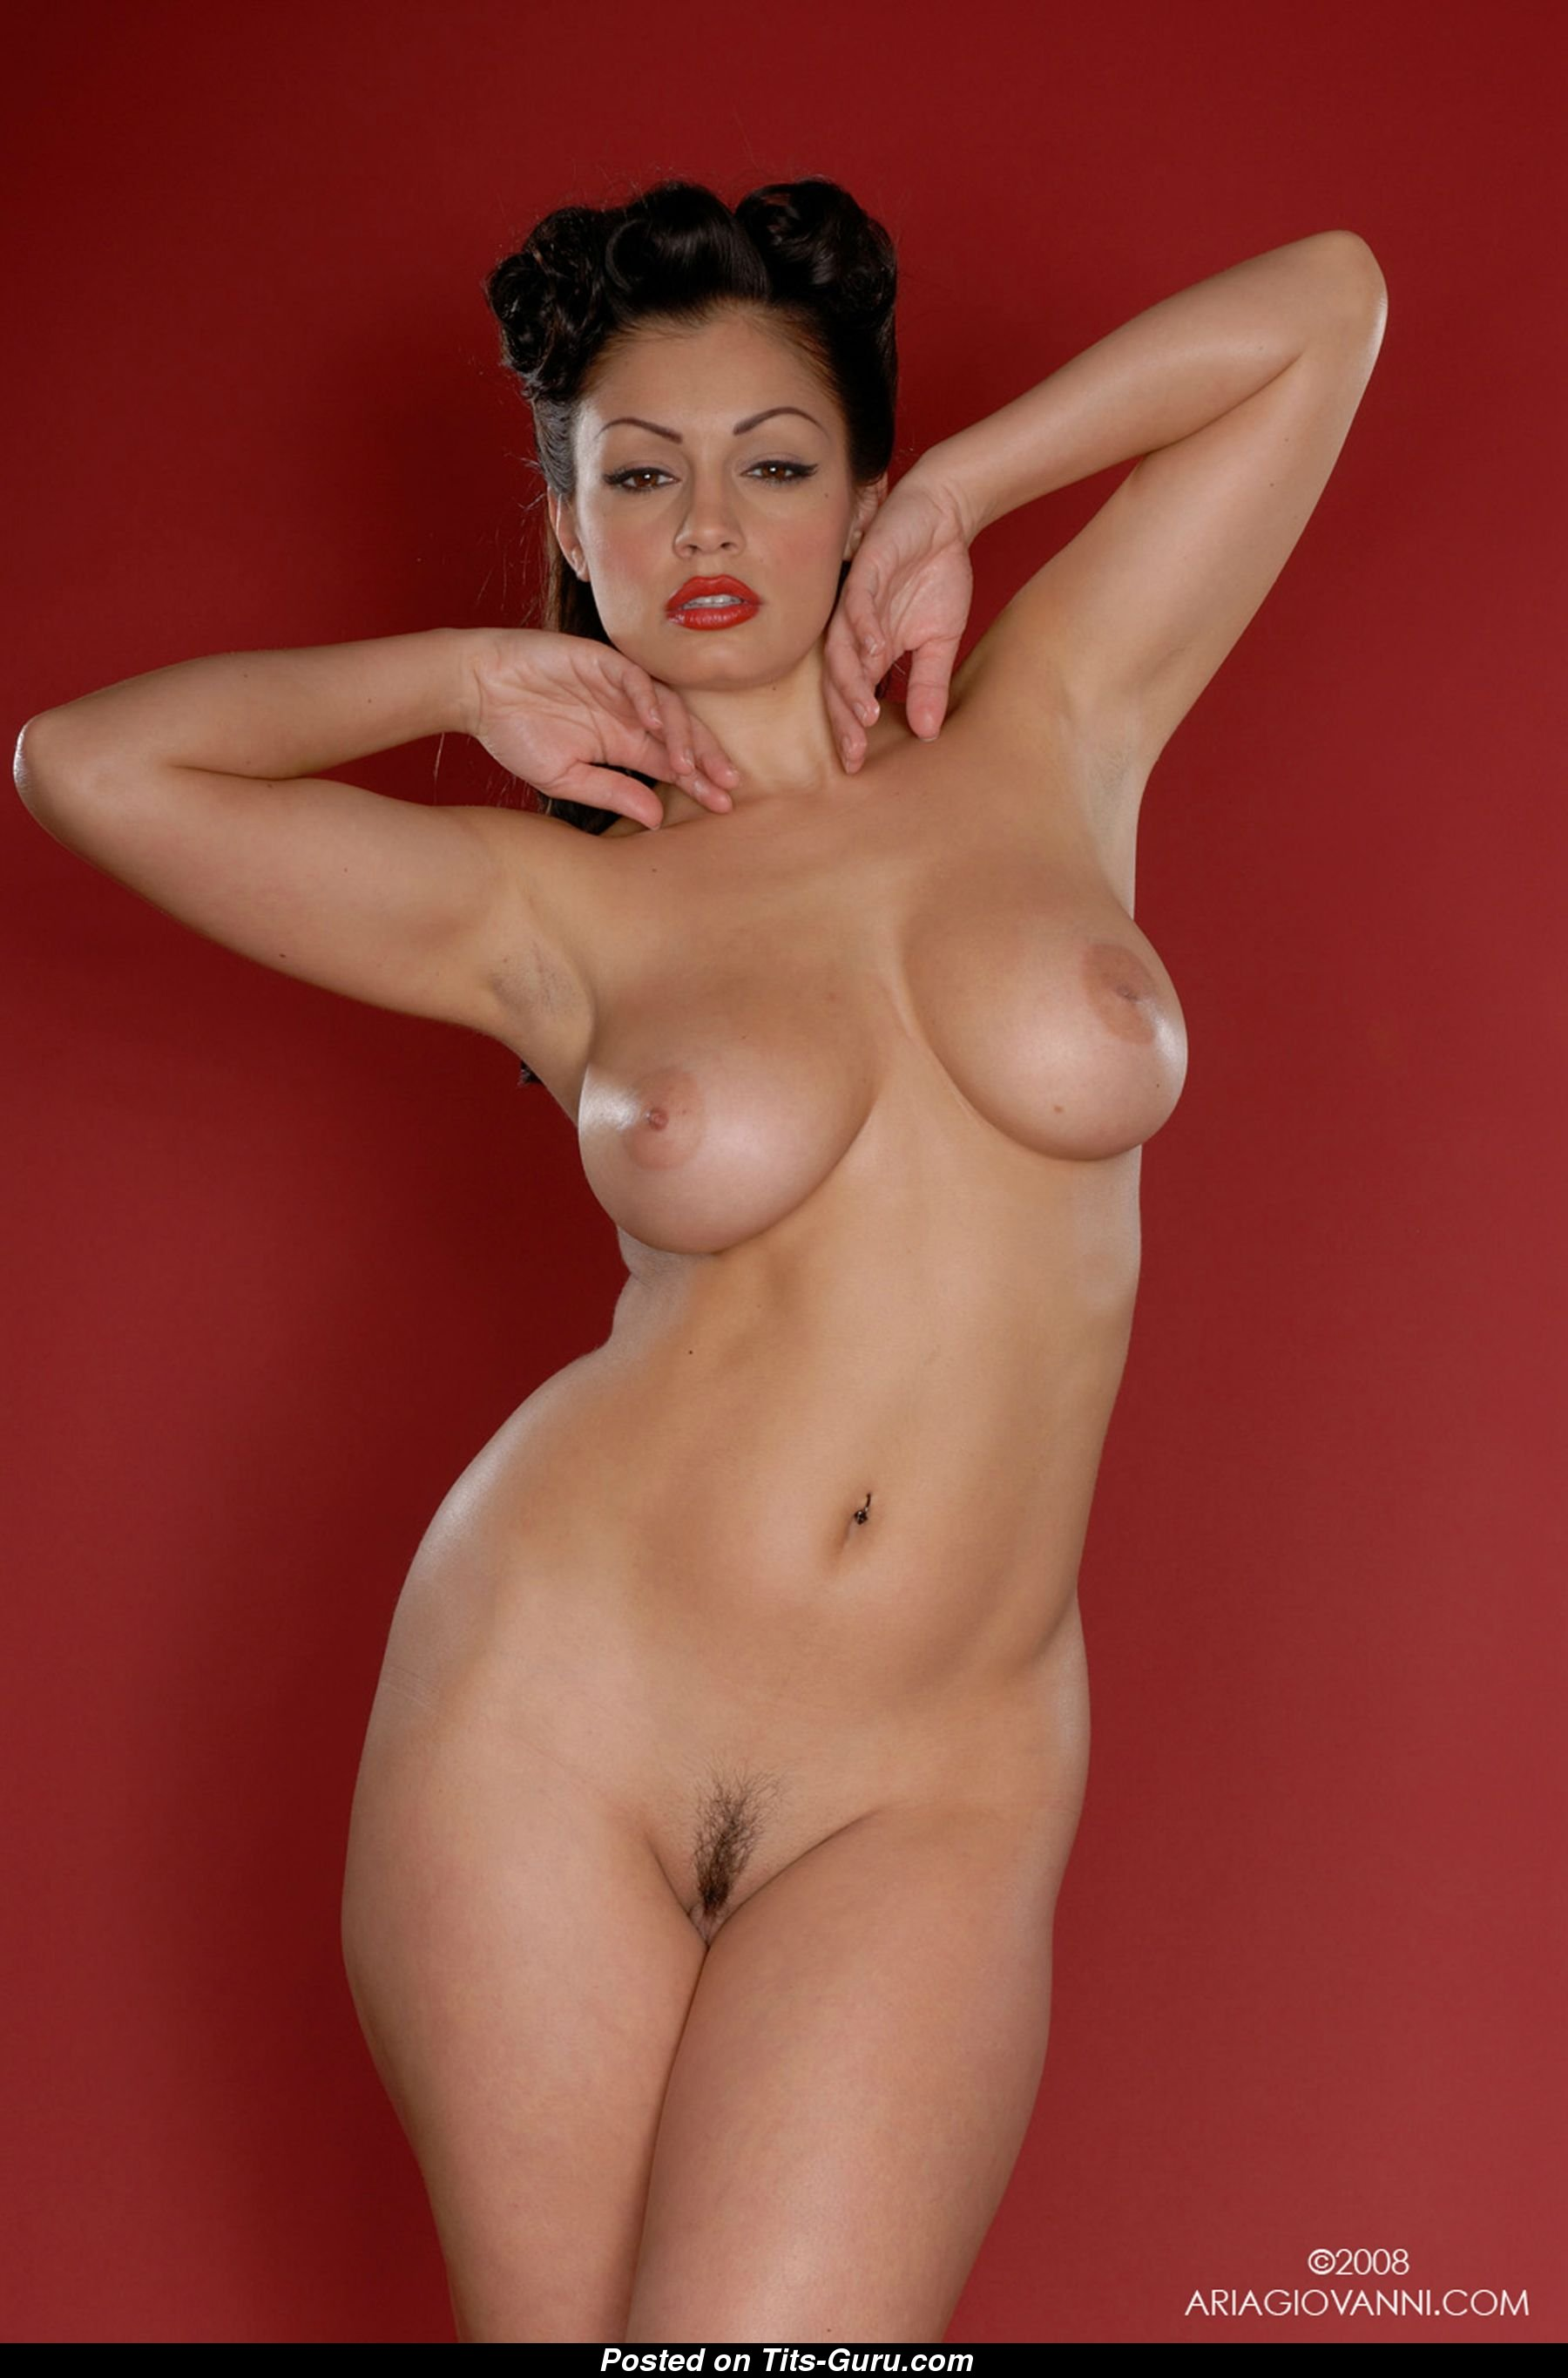 Aria Giovanni Porn Pictures aria giovanni nude 🌶️ 37 pics of hot naked boobs